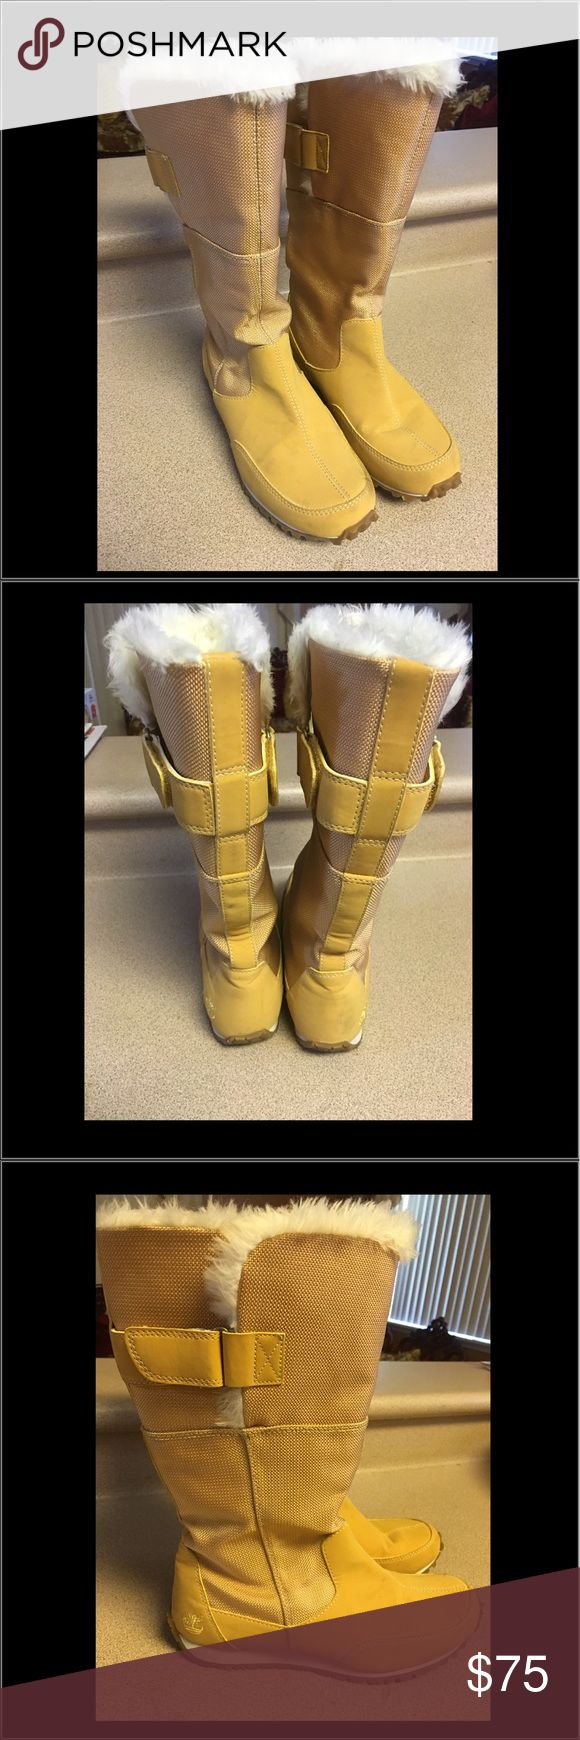 EUC TIMBERLAND Womens Mid-calf boot Size 8 Nubuck Pre-Owned TIMBERLAND Womens  Mid-calf boot Size 8 Nubuck Leather With Velcro. In good condition. Timberland Shoes Ankle Boots & Booties